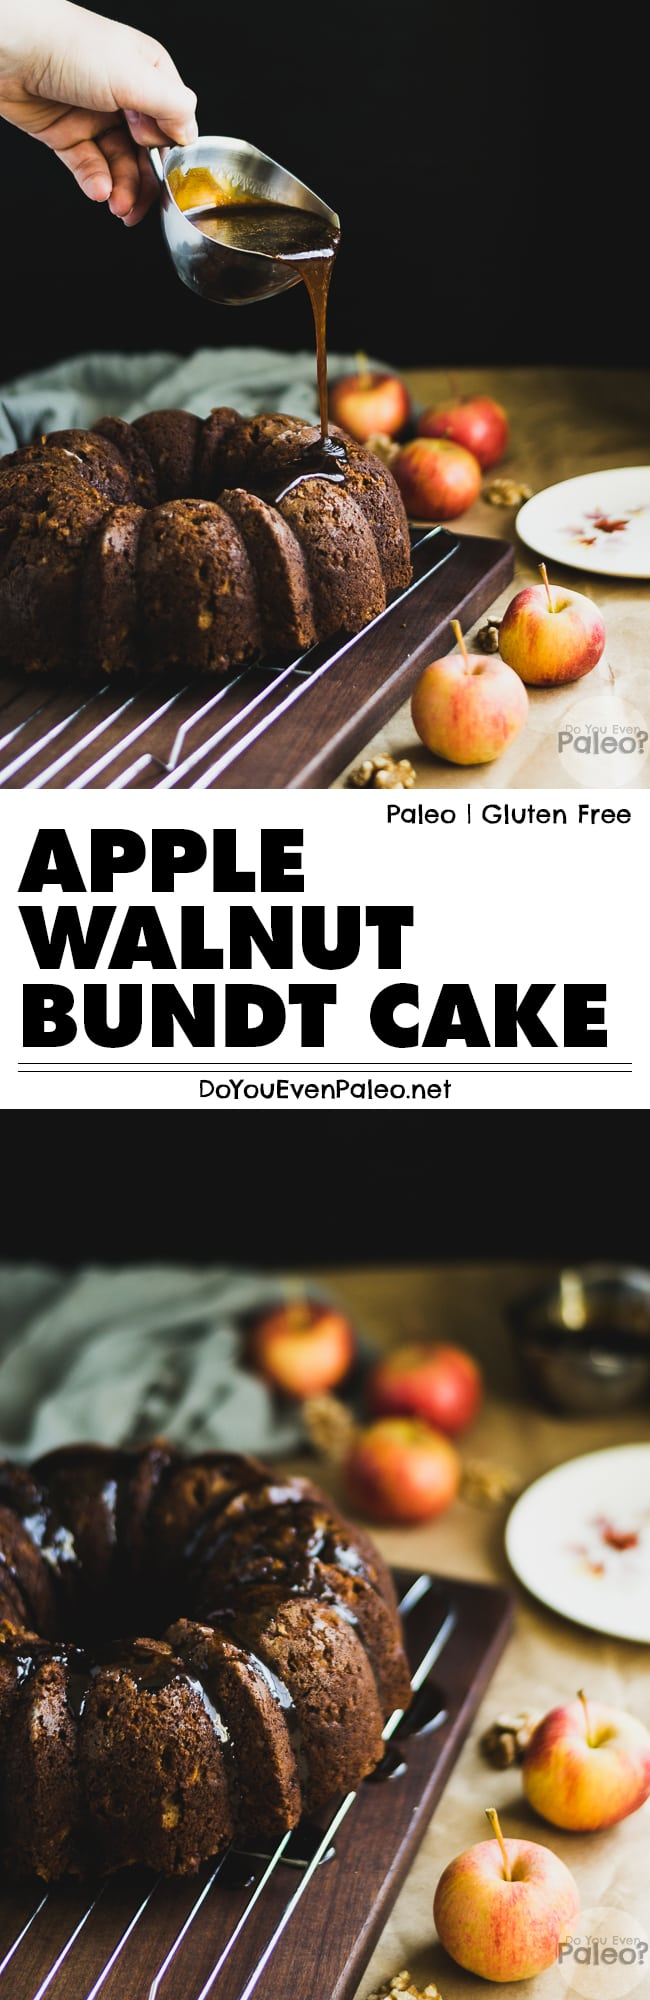 This lush paleo apple walnut bundt cake is complete with sweet apples, toasty walnuts and warm spices. It pairs perfectly with a hot cup of coffee or tea! | DoYouEvenPaleo.net